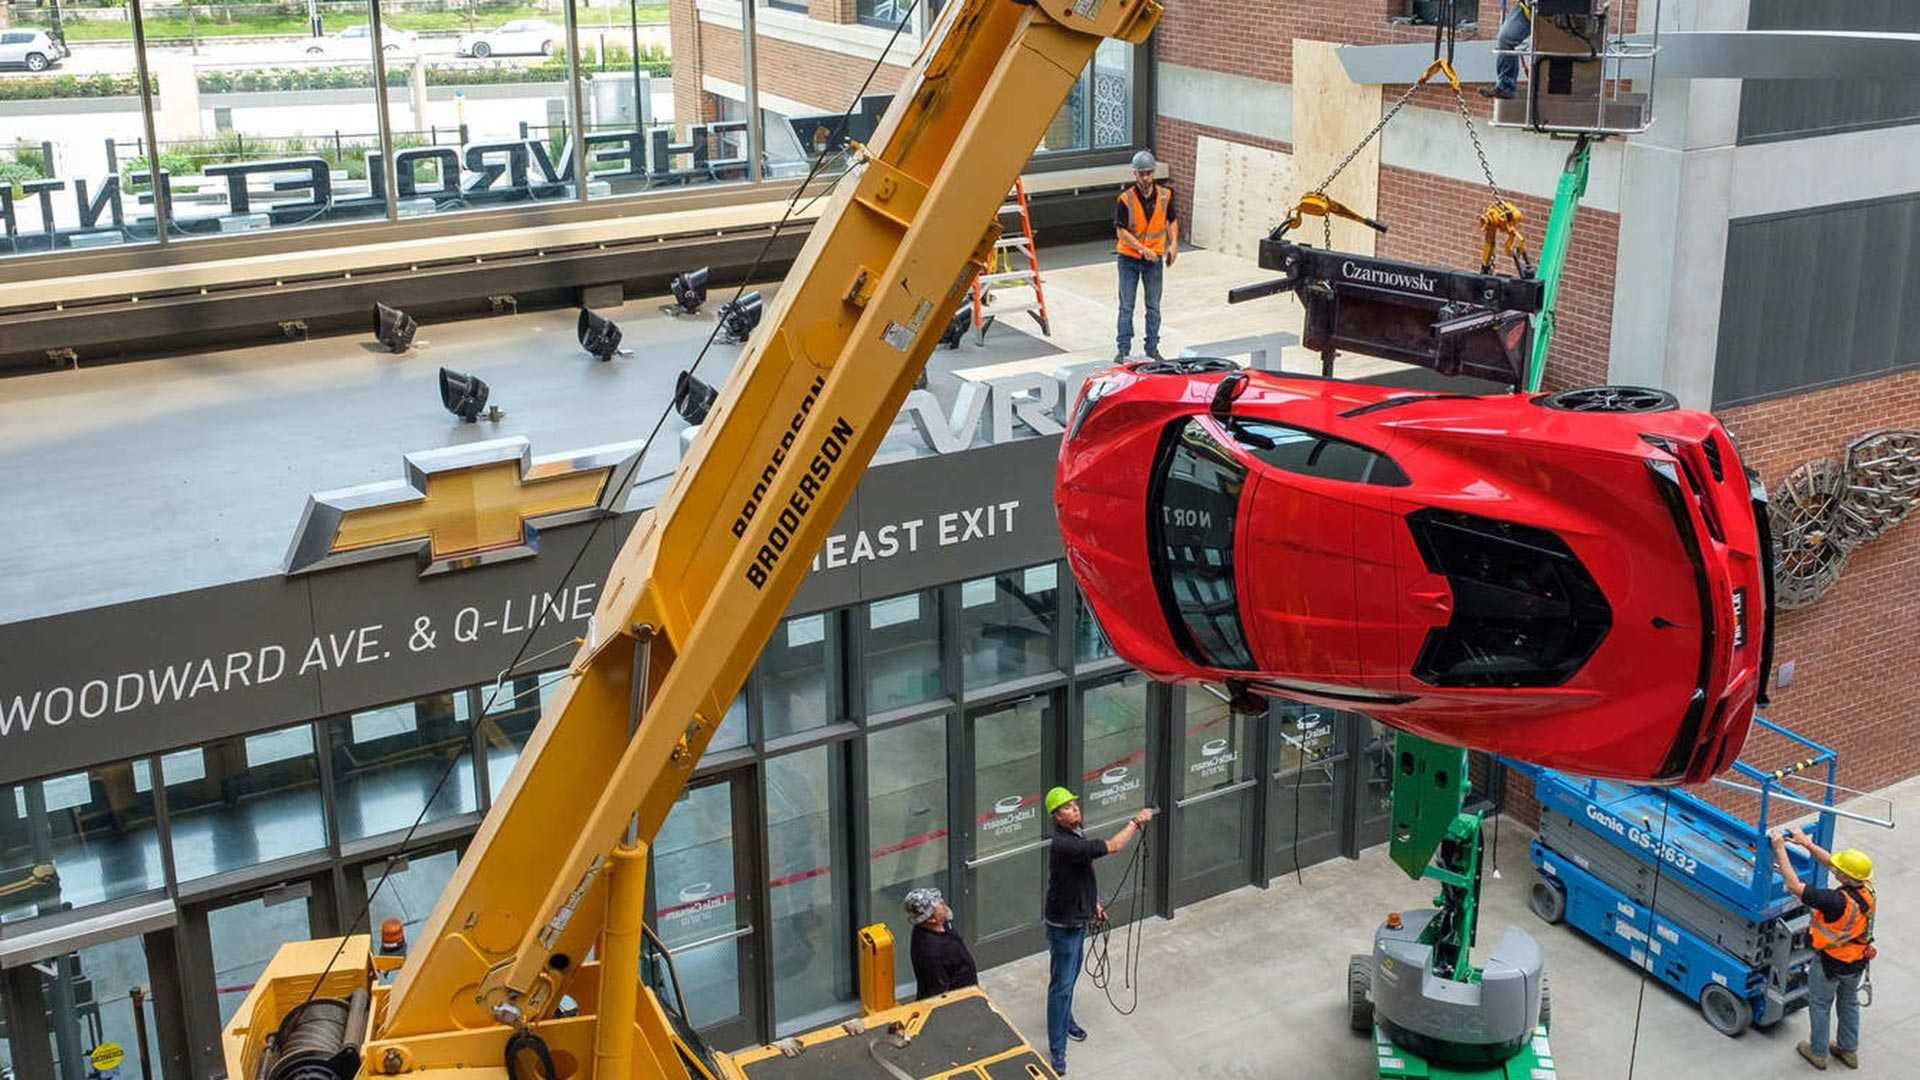 2020 Chevrolet Corvette LCA wall art